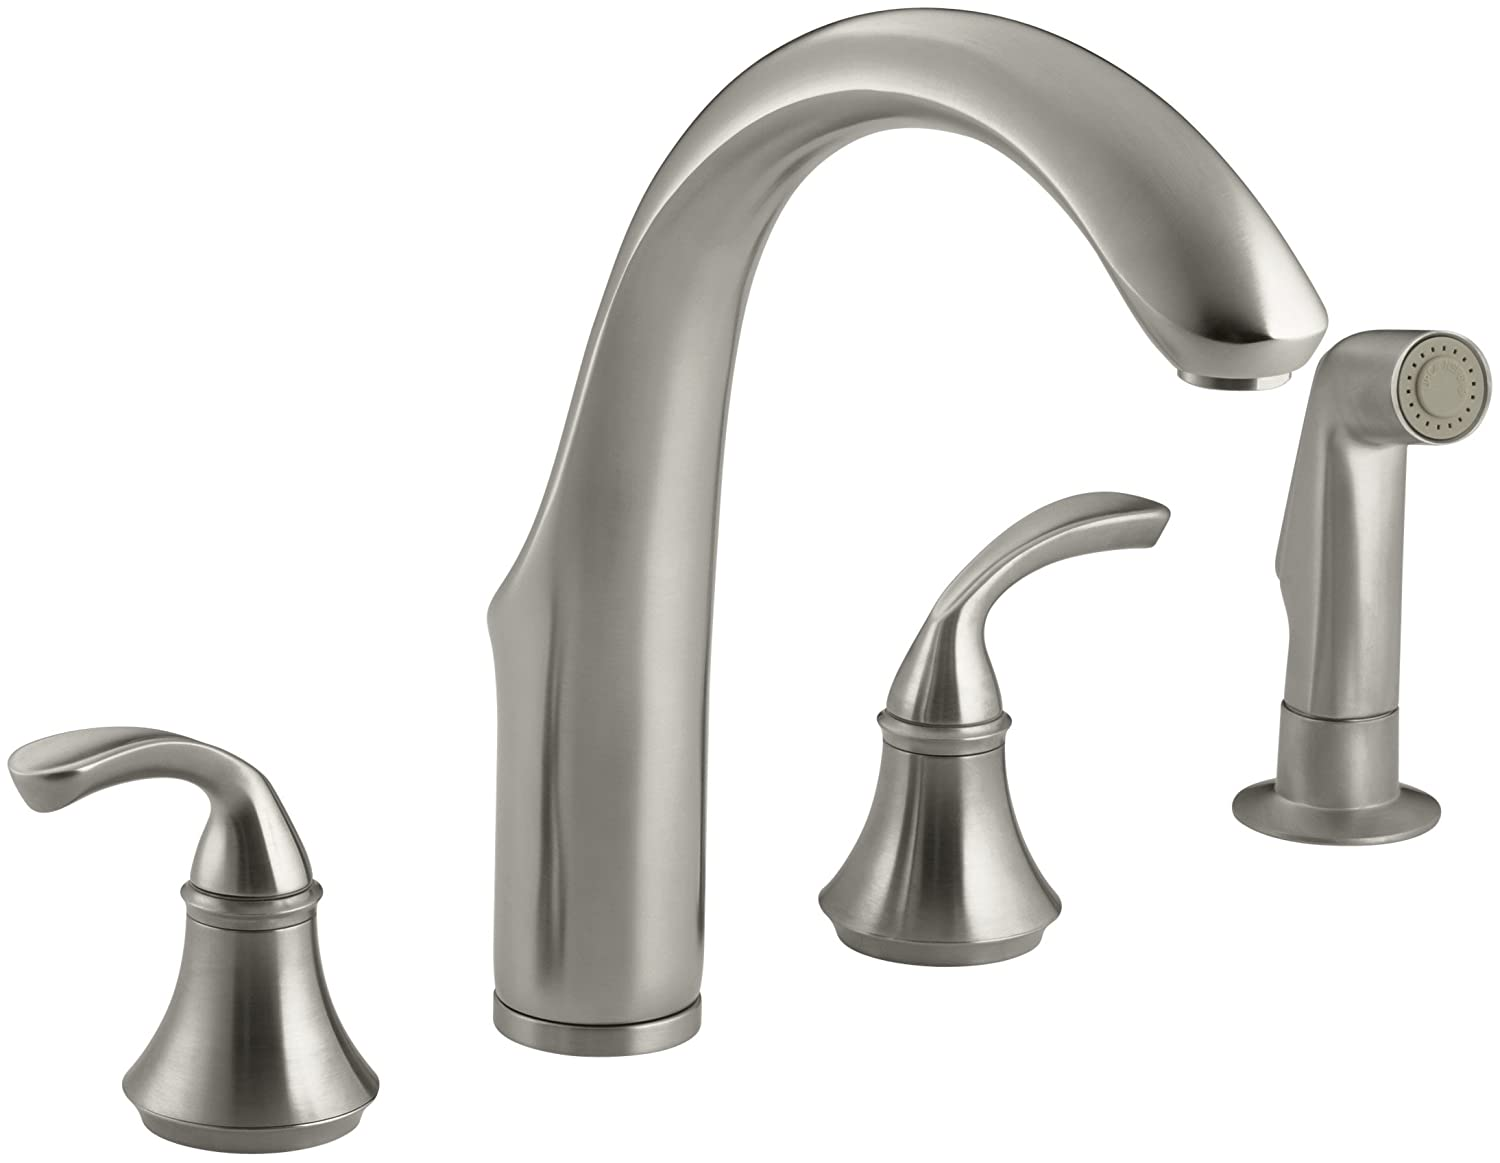 KOHLER 10445-BN Fort R 4-Hole Sink 7-3 4 spout, Matching Finish sidespray Kitchen Faucet, Vibrant Brushed Nickel